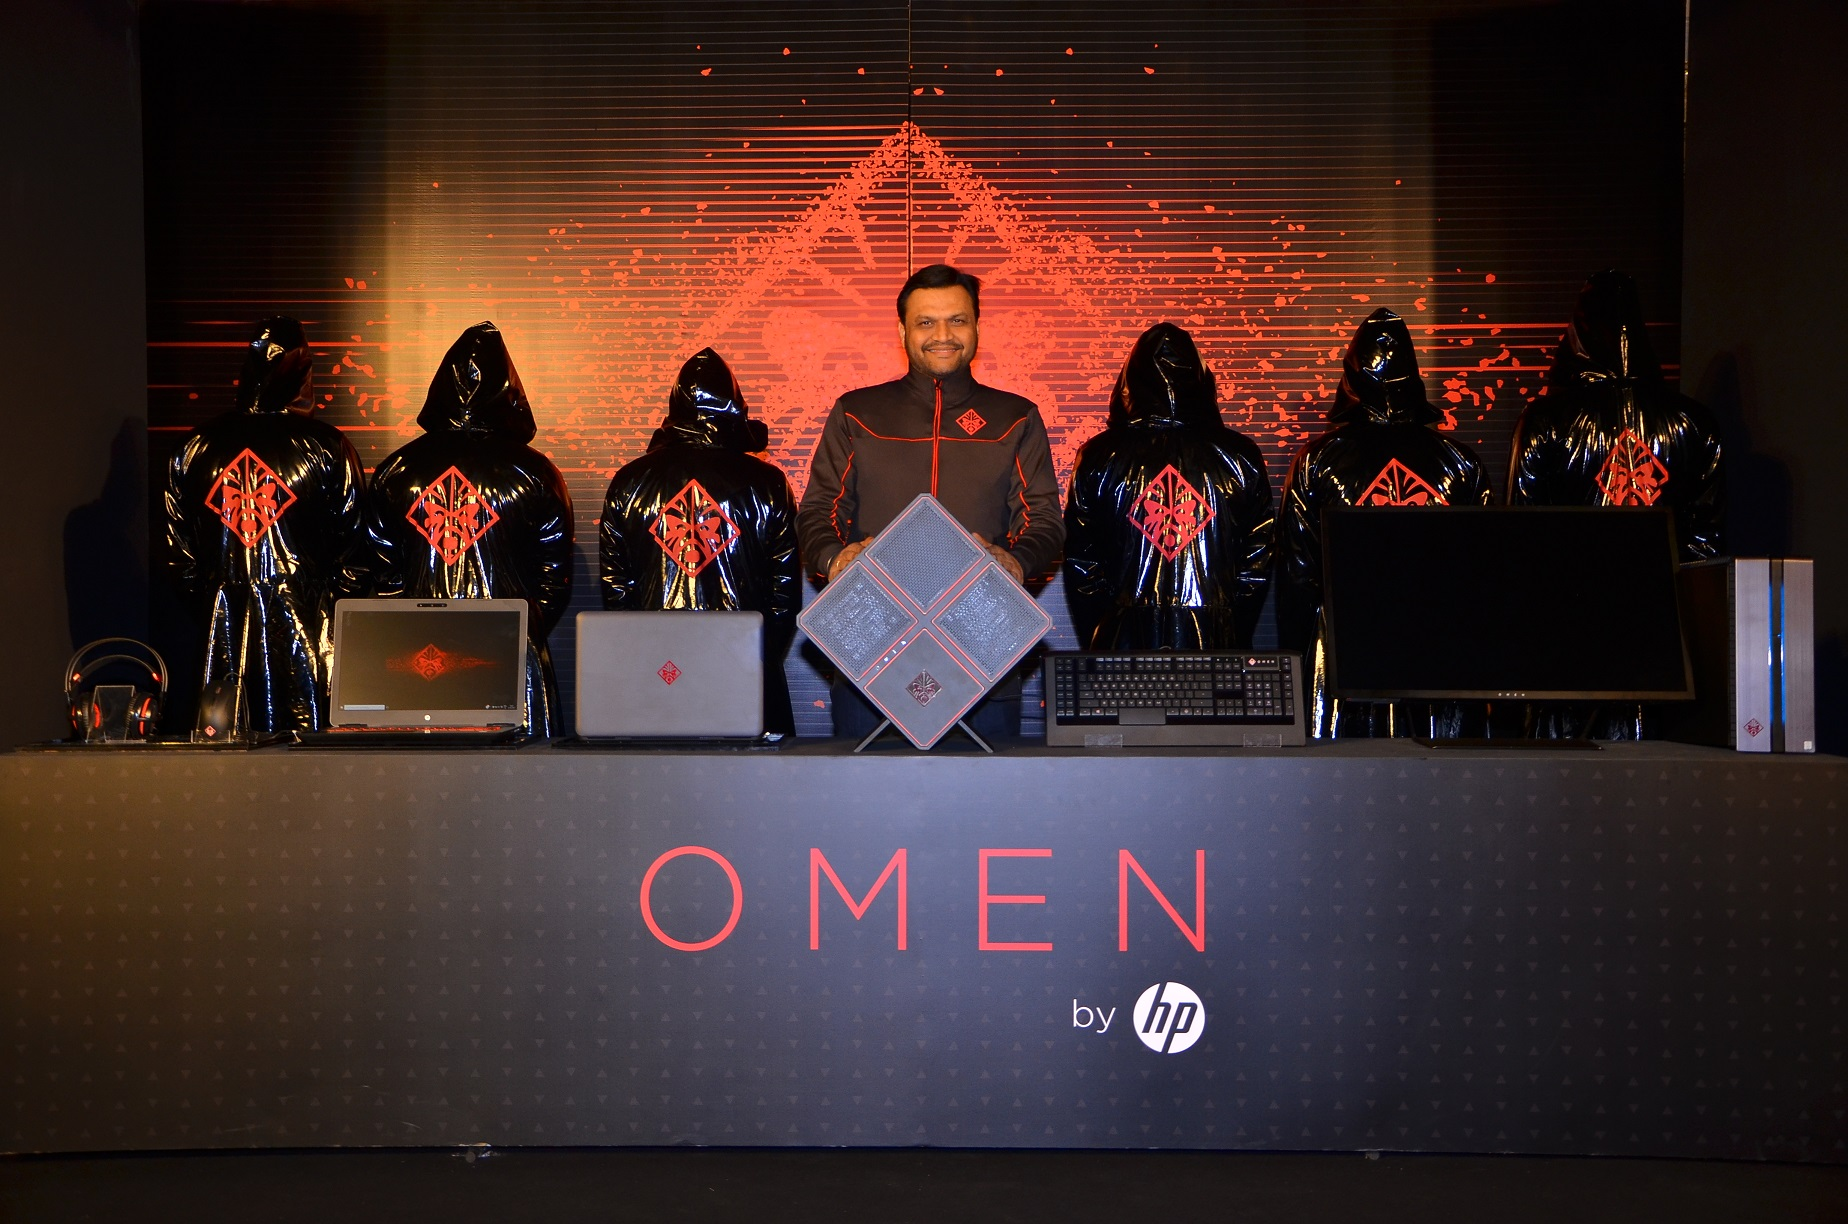 HP Omen Gaming Laptops, Desktops and Accessories launched in India